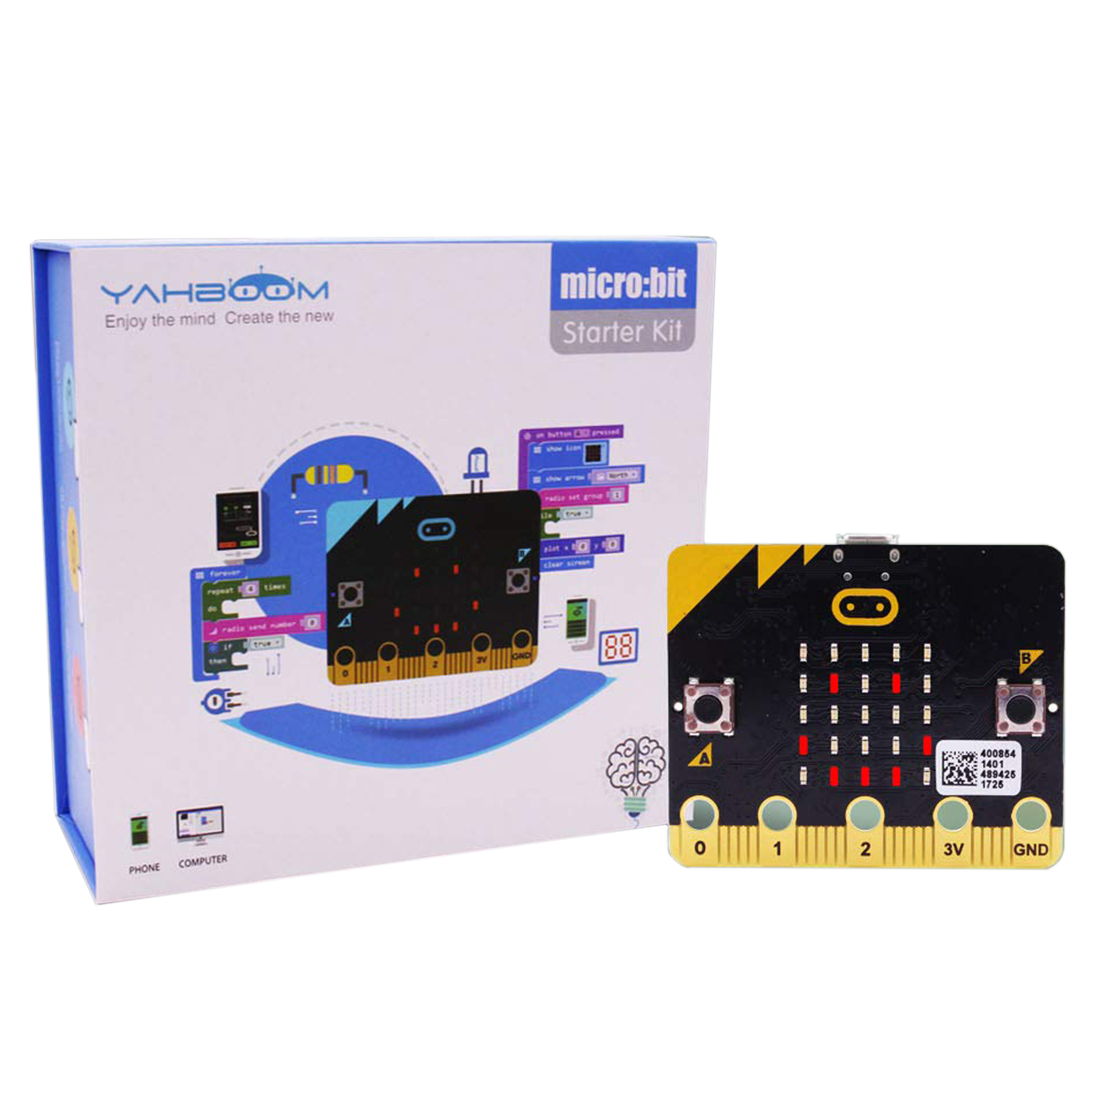 Micro:bit Kit Starter Learning Kit Micro Bit Board Graphical Programmable Toys With Guidance Manual For Kids Gift 2019 New